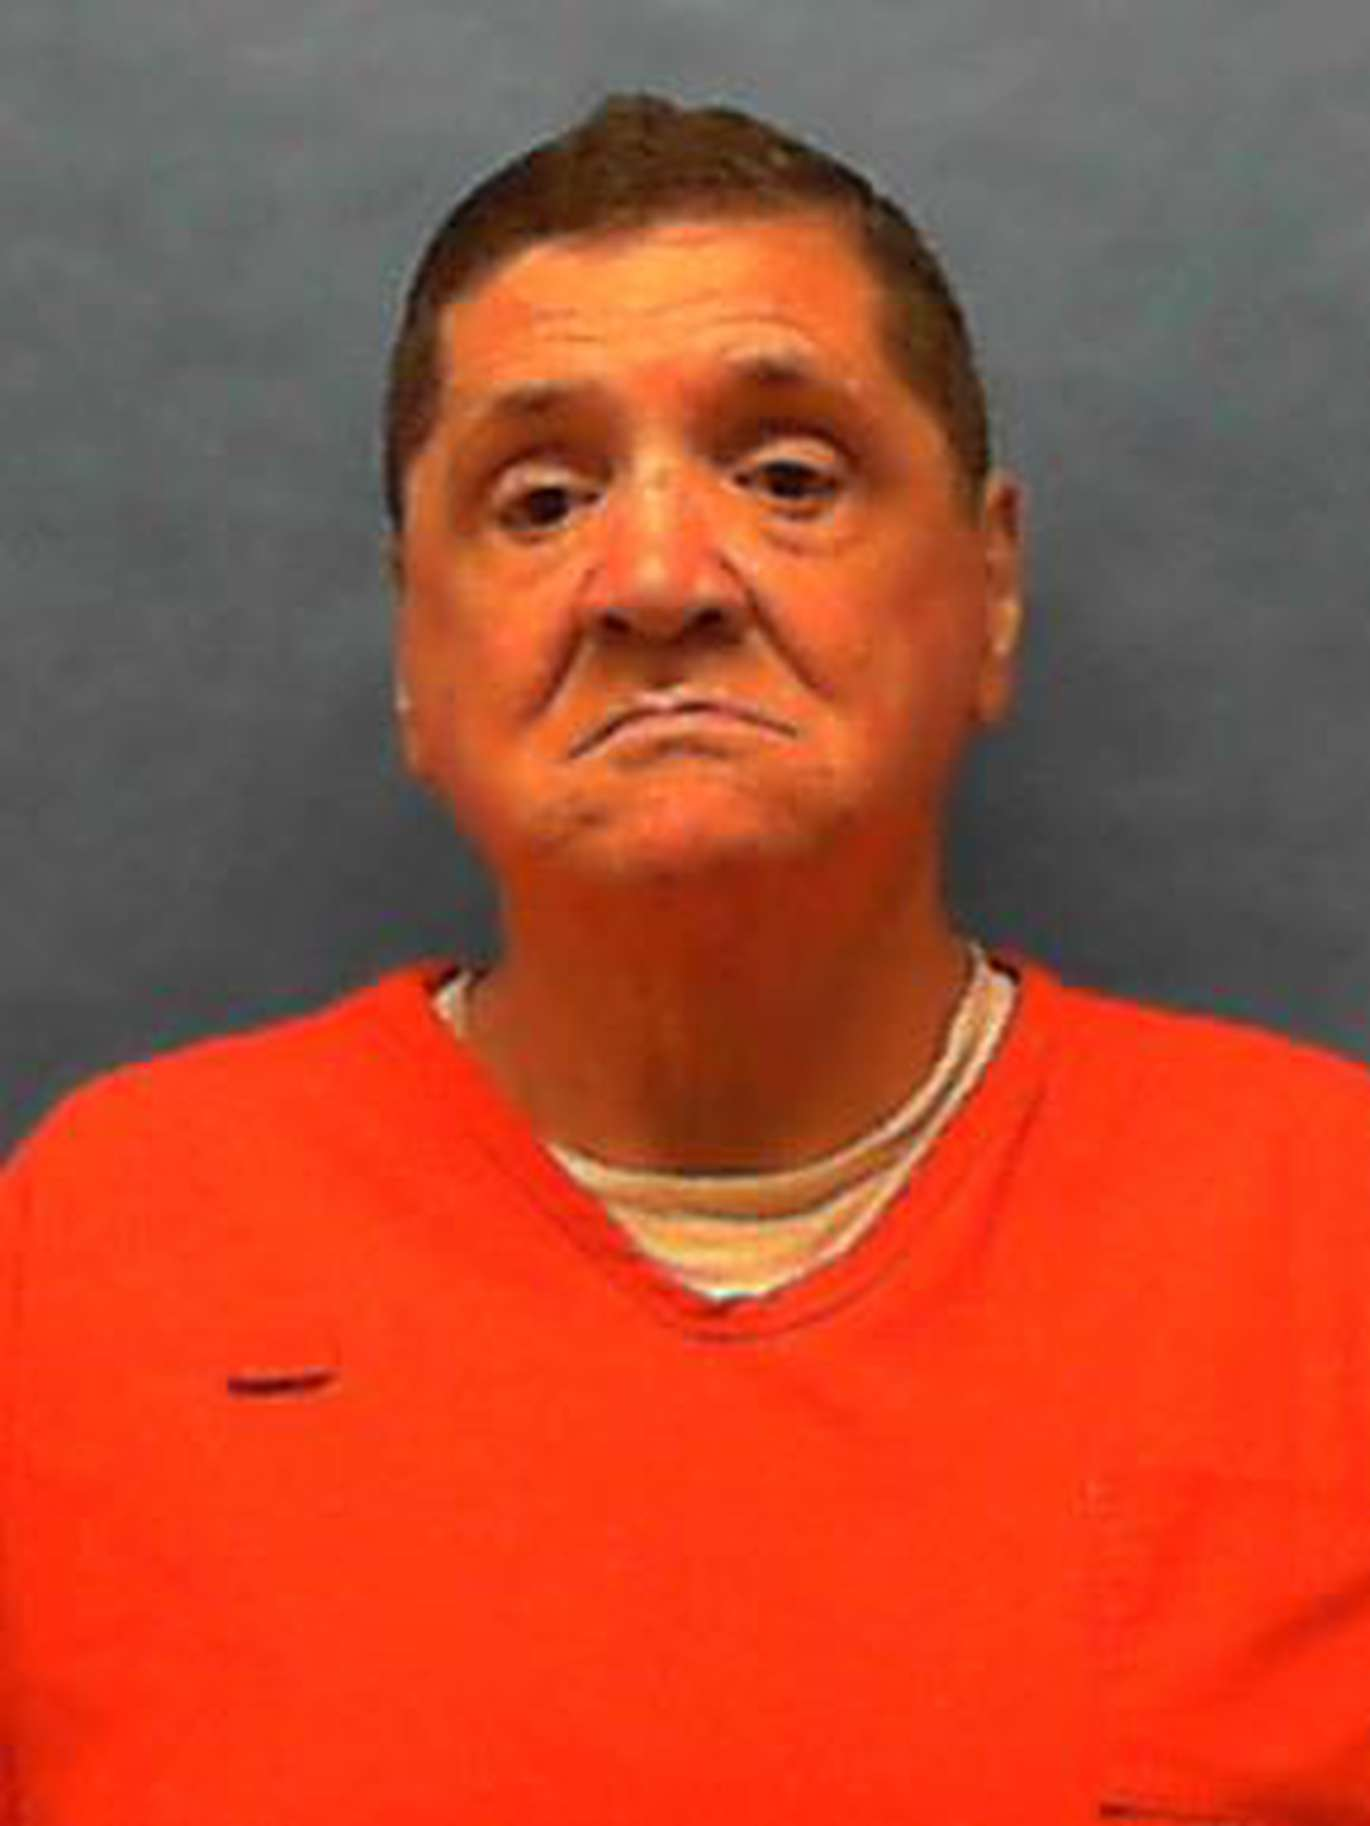 Richard Rhodes was convicted and sentenced to death in September 1985 for the murder of Karen Nieradka in February 1984. Nieradka was found in debris from the demolition of the Sunset Hotel in Clearwater one month after she had died by strangulation. He was resentenced in March 1992.